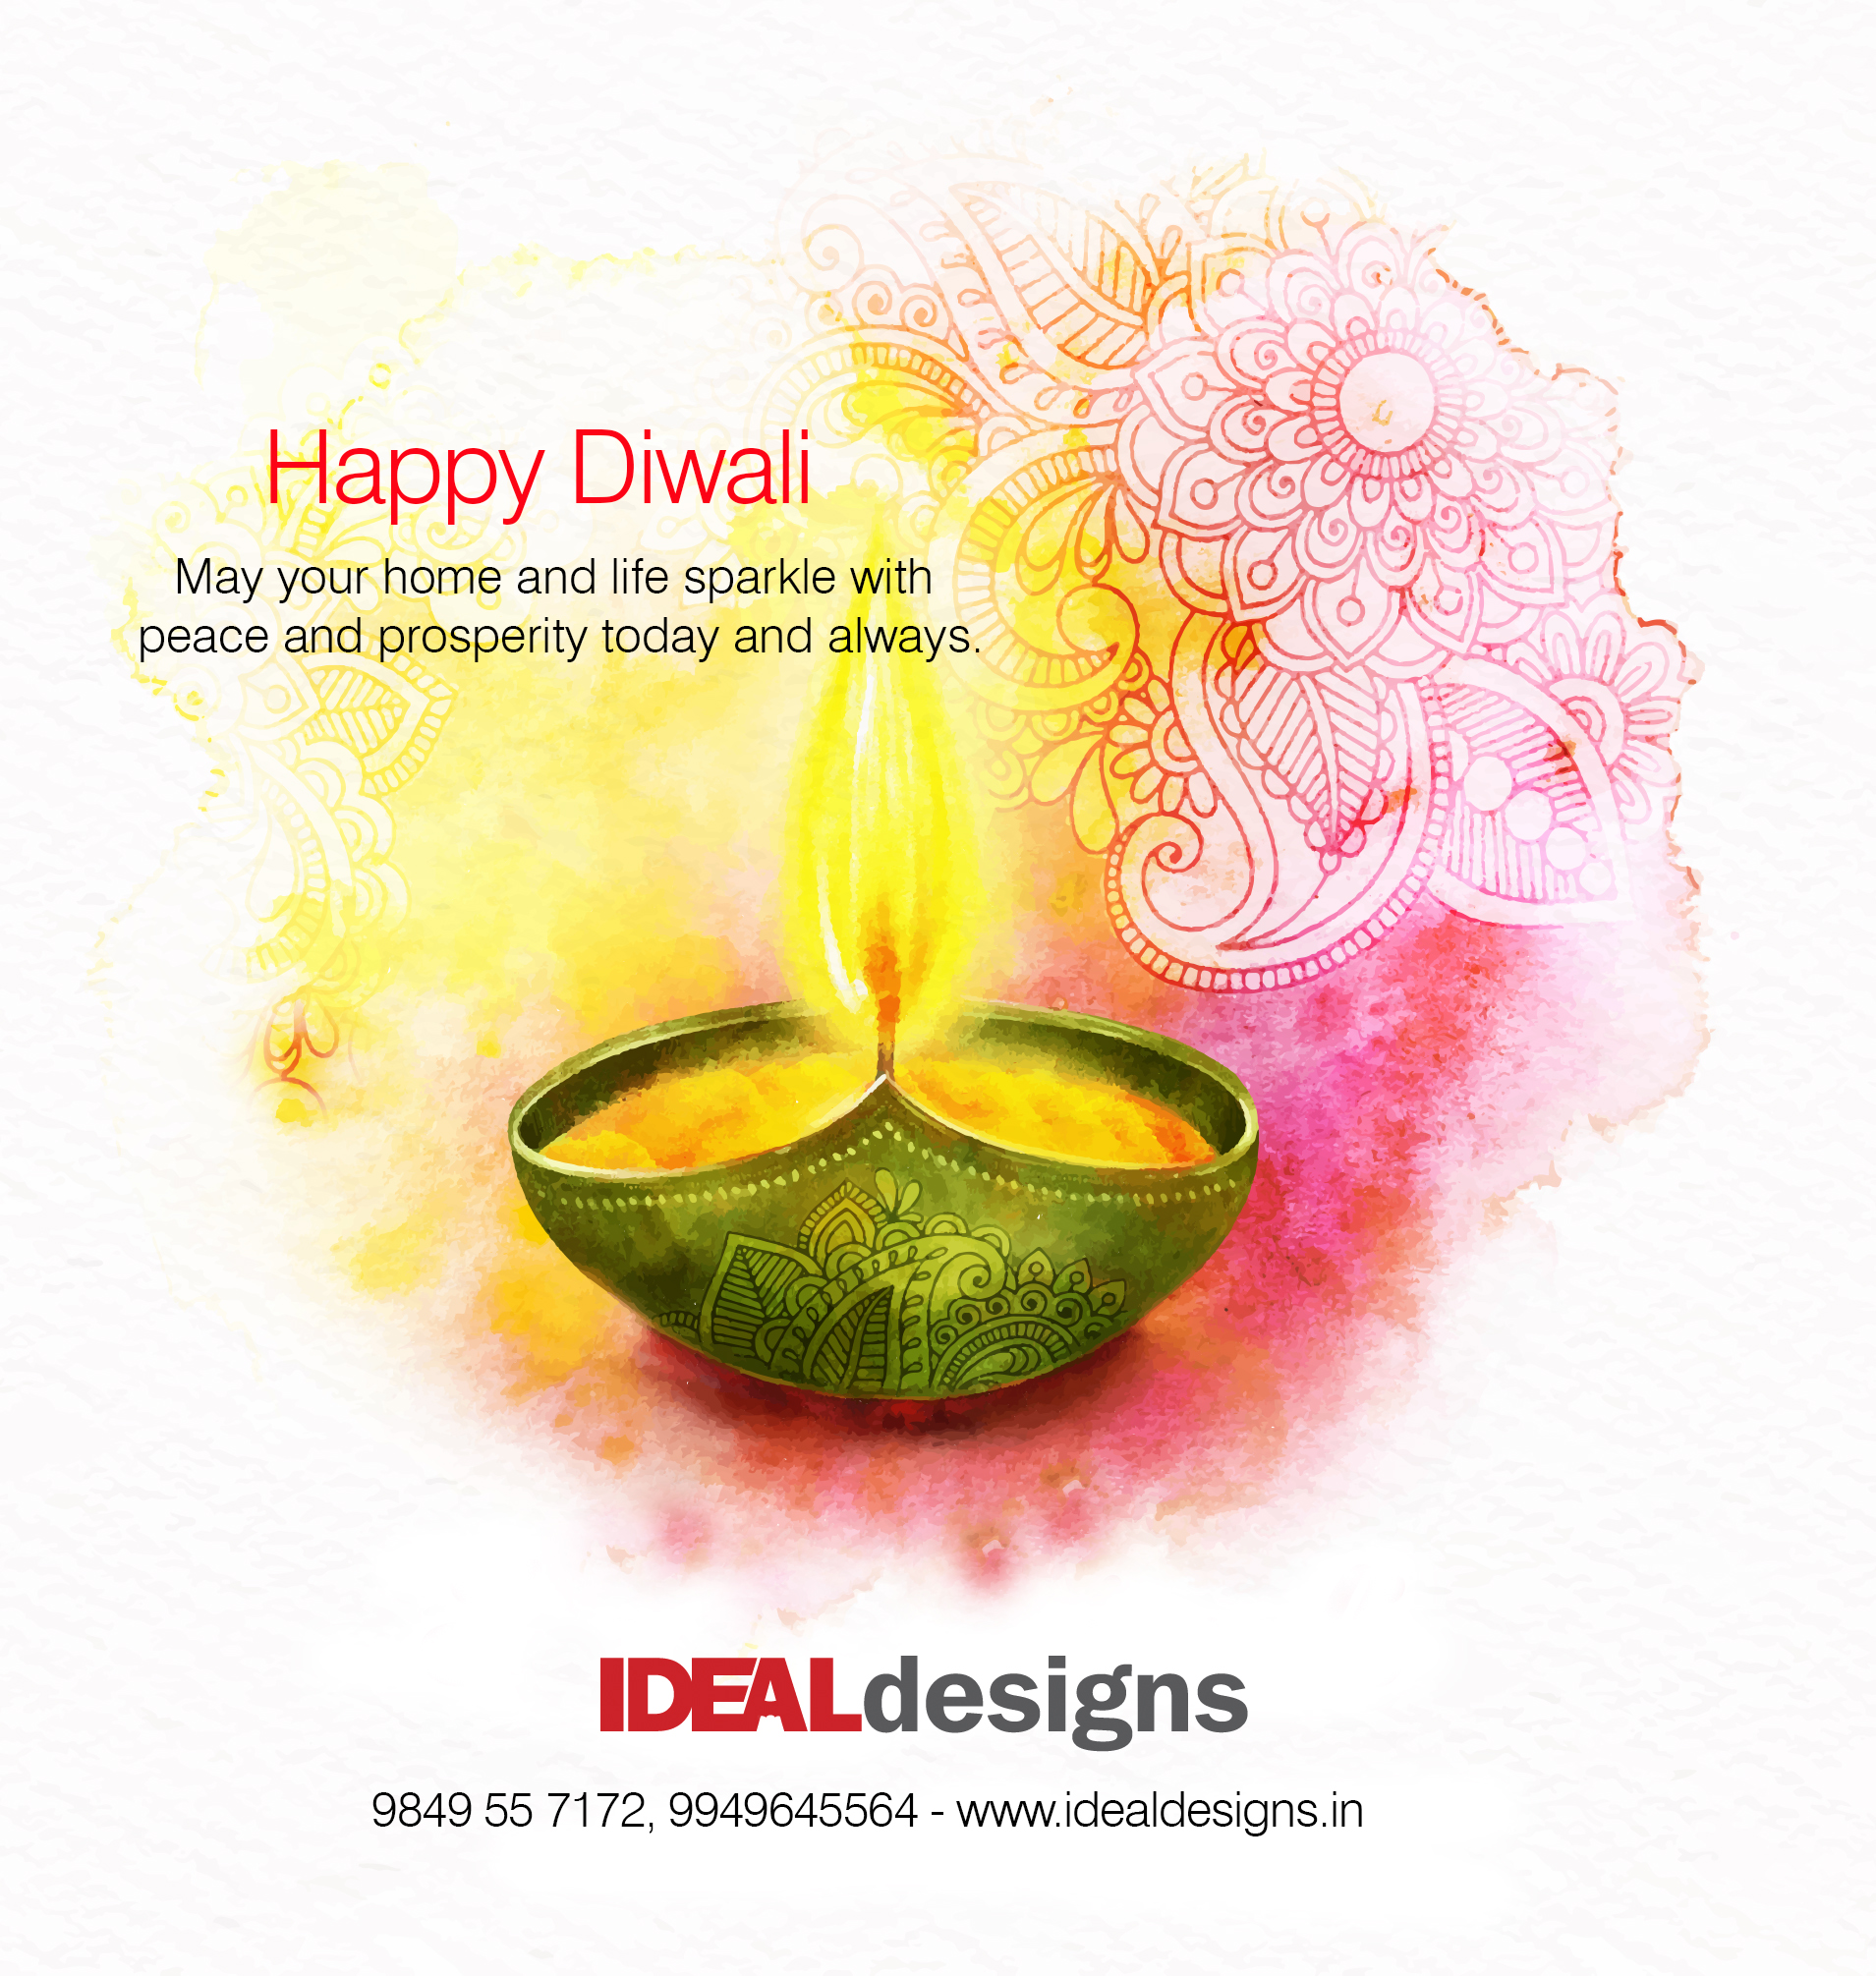 Happy Diwali Greetings